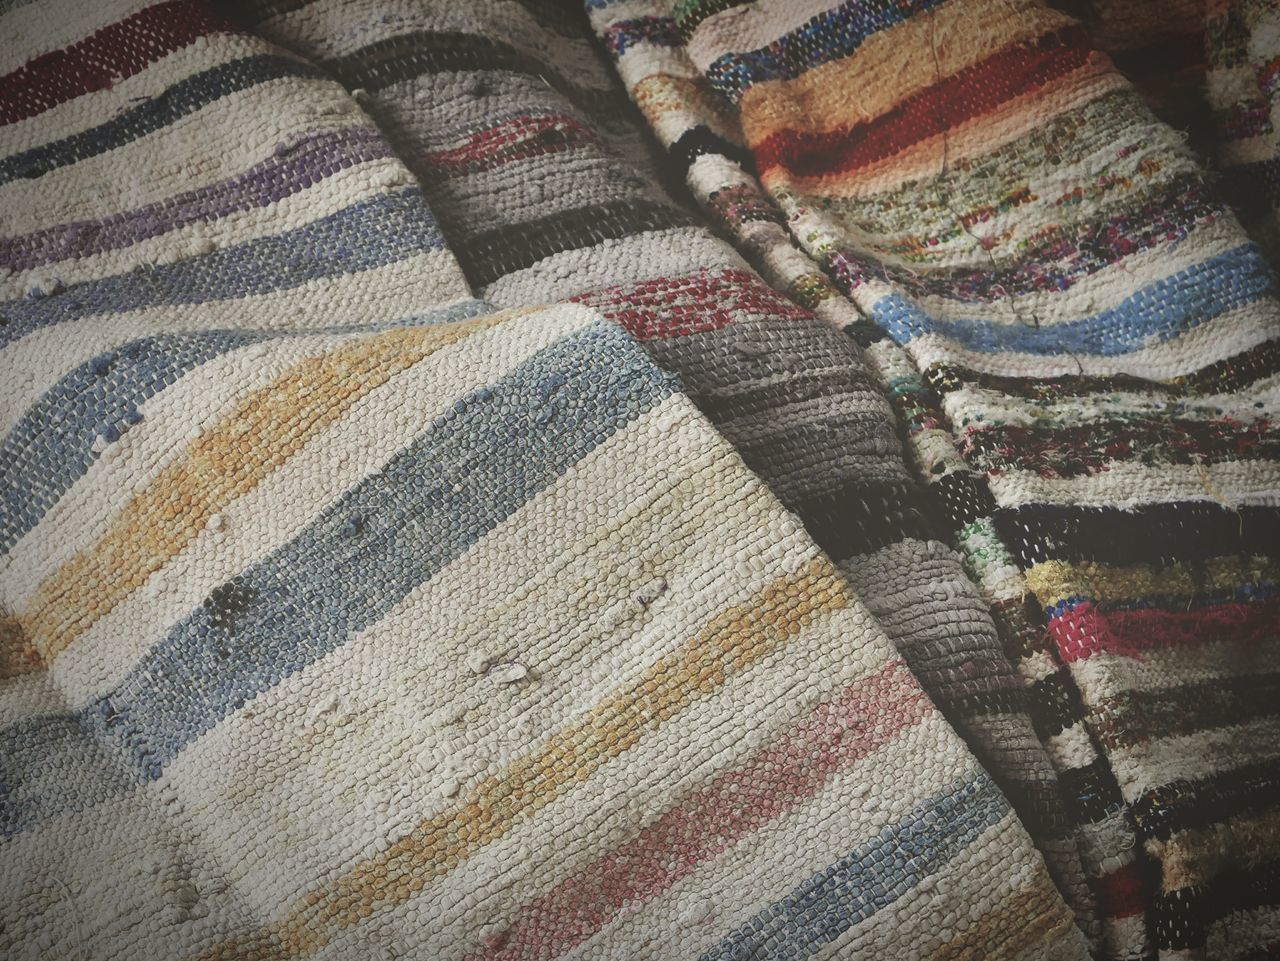 Fabric Textiles Texturas Texturas Y Colores Textures And Patterns